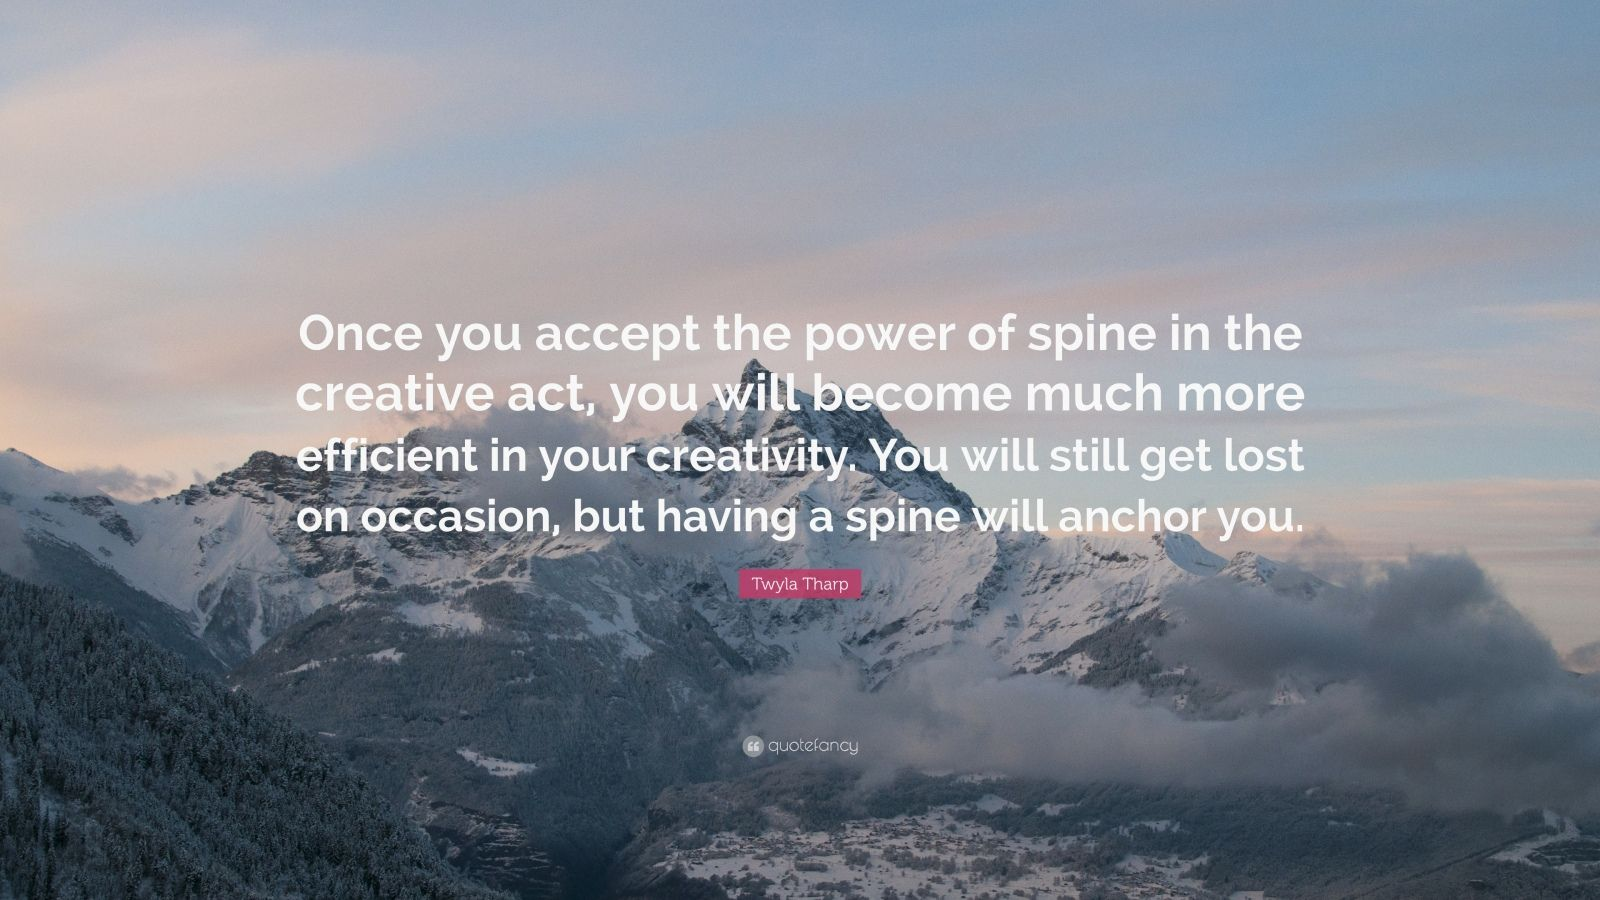 """Twyla Tharp Quote: """"Once you accept the power of spine in the creative act, you will become much more efficient in your creativity. You will still get lost on occasion, but having a spine will anchor you."""""""